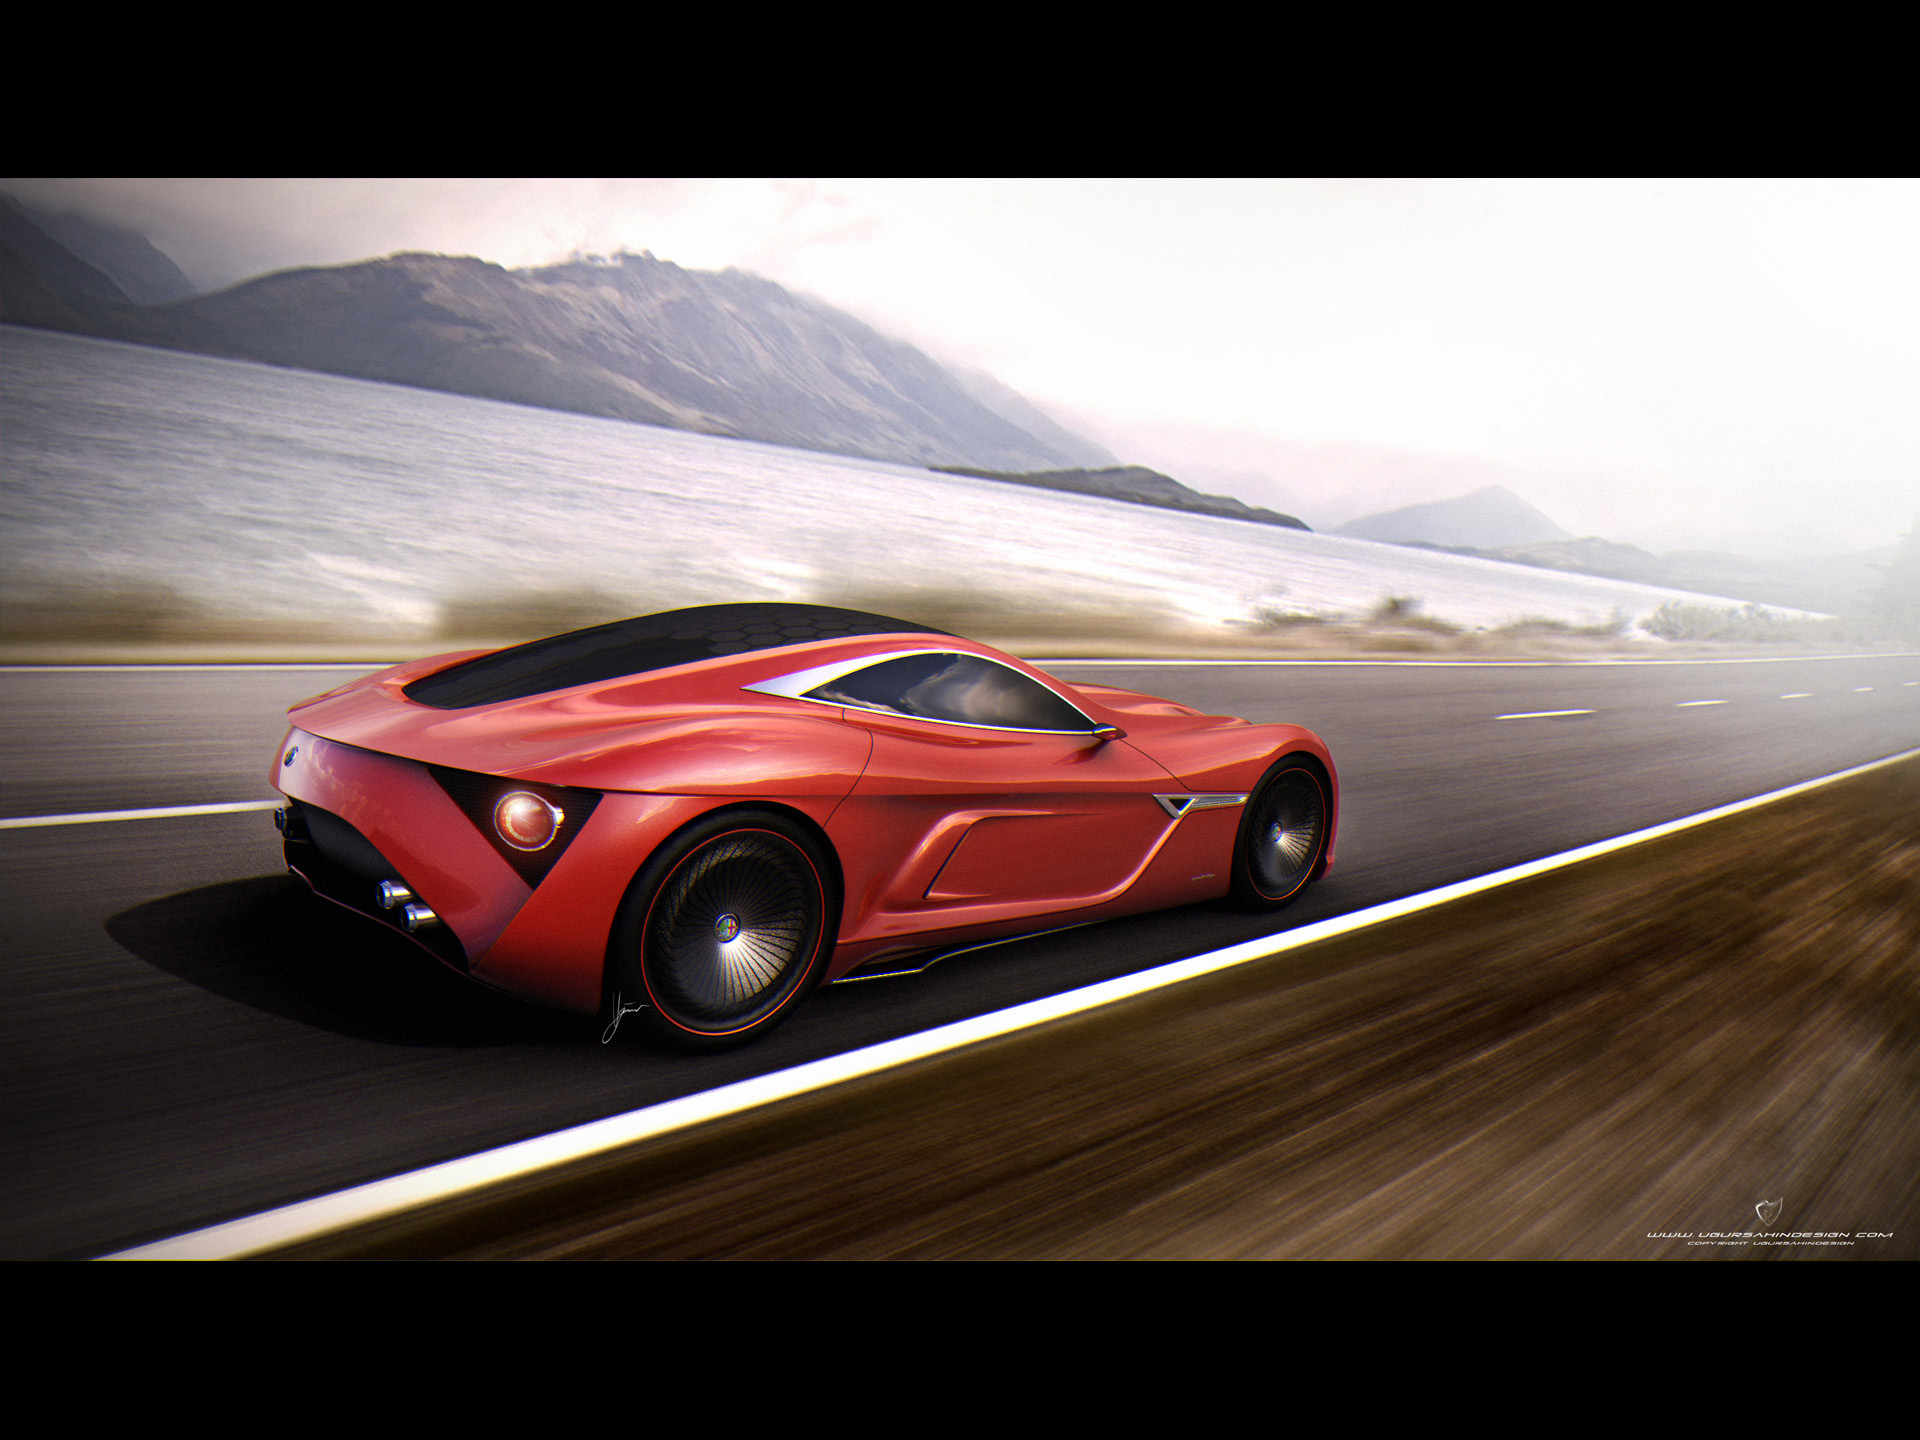 1920x1440 - Alfa Romeo 12C GTS Wallpapers 31